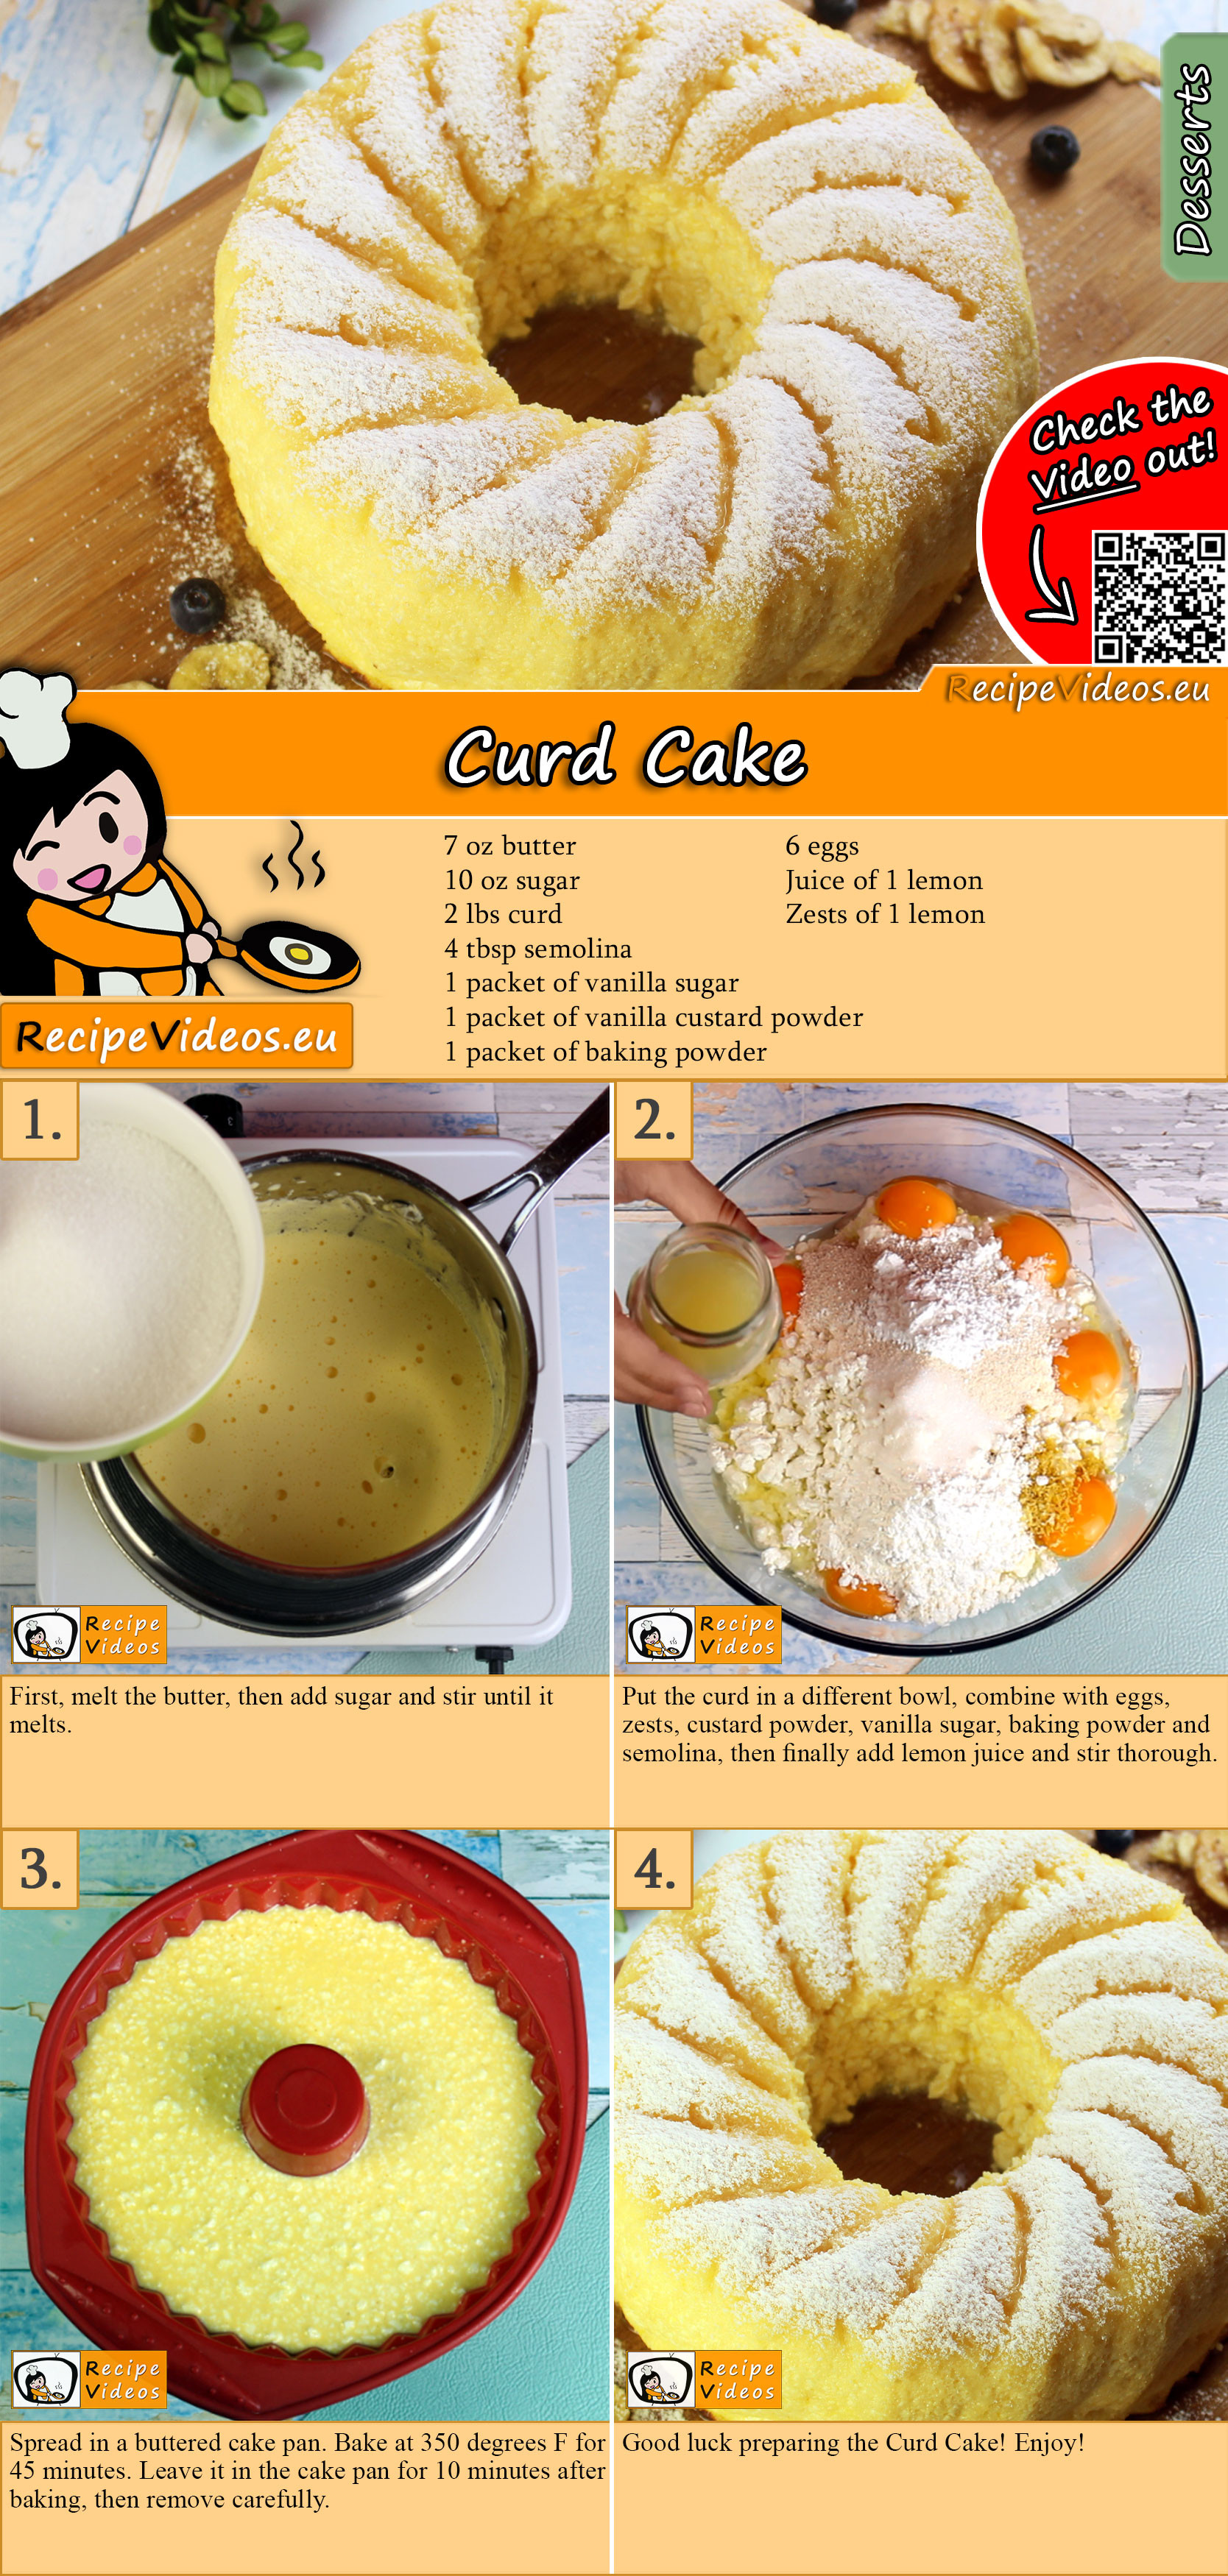 Curd Cake recipe with video